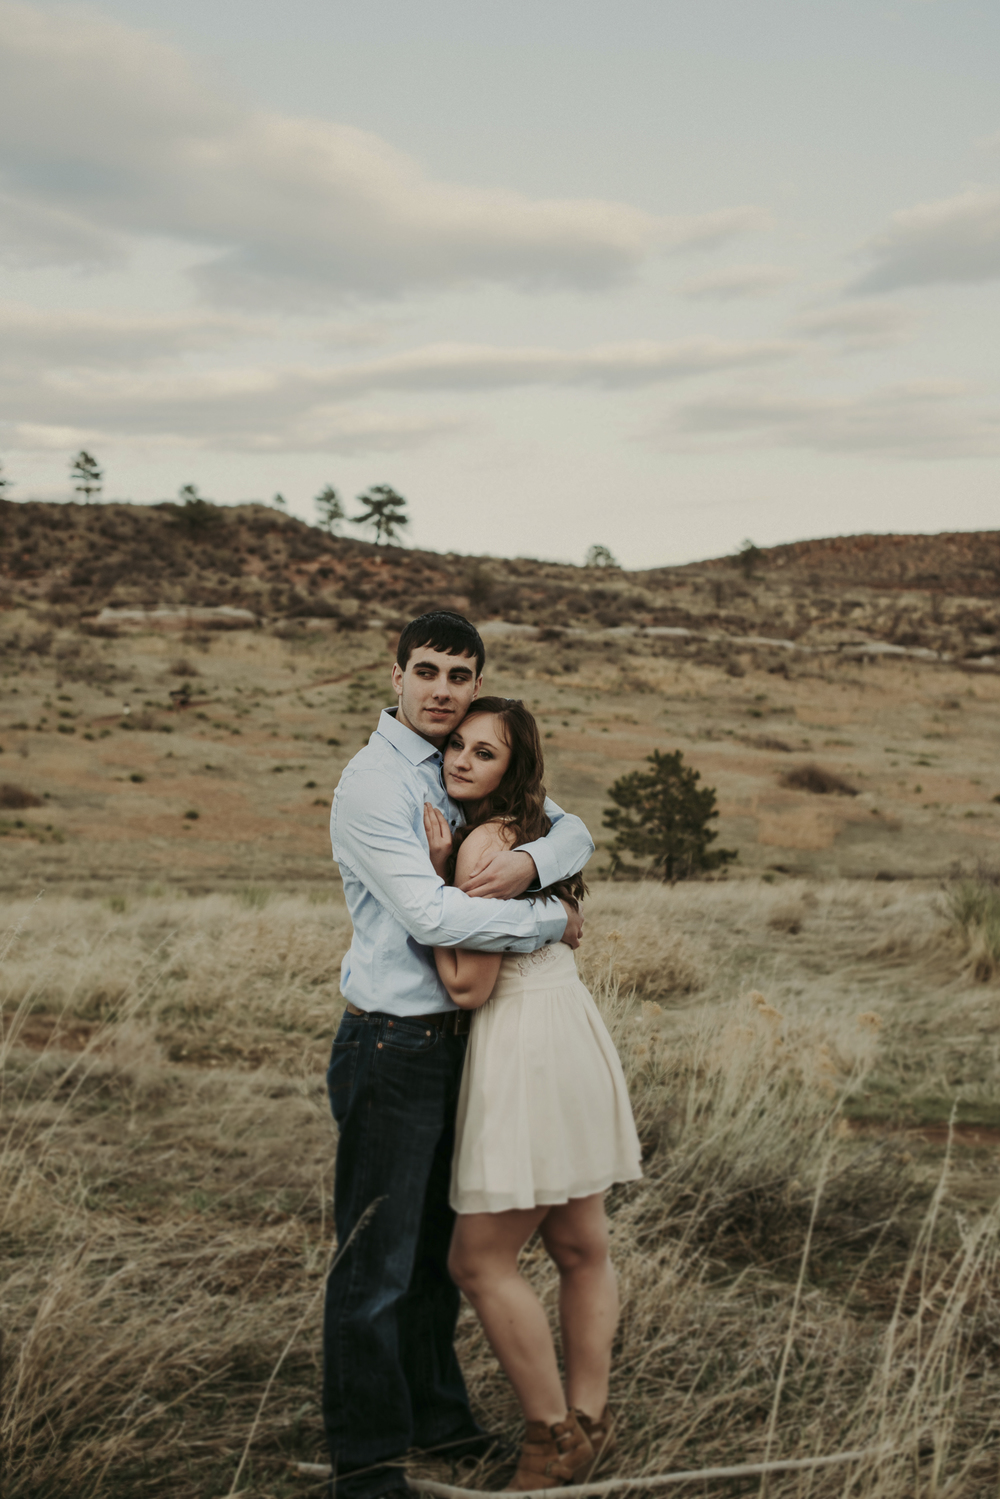 180416CHAI RYAN - COLORADO PHOTOGRAPHER - DEBI RAE PHOTOGRAPHY-9087.jpg